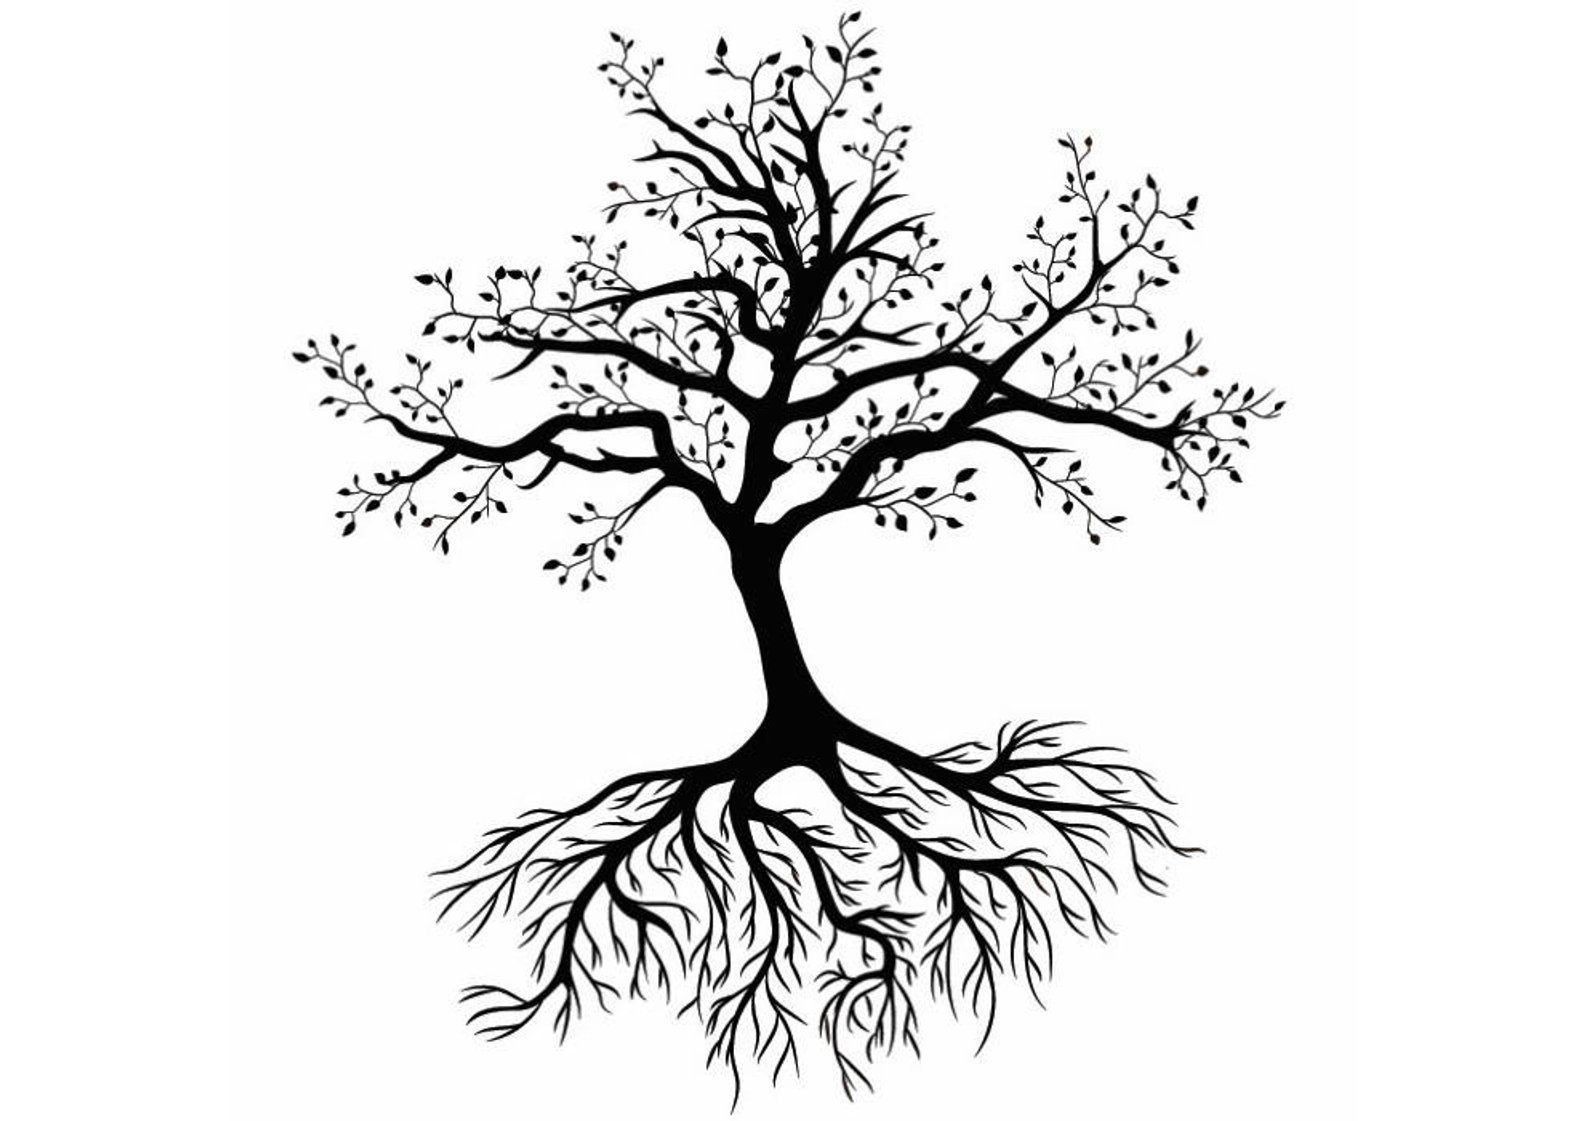 Tree 1 Life Roots Exposed Family Grow Growth Growing Flower Etsy Tree Tattoo Vector Free Tree Tattoo Designs